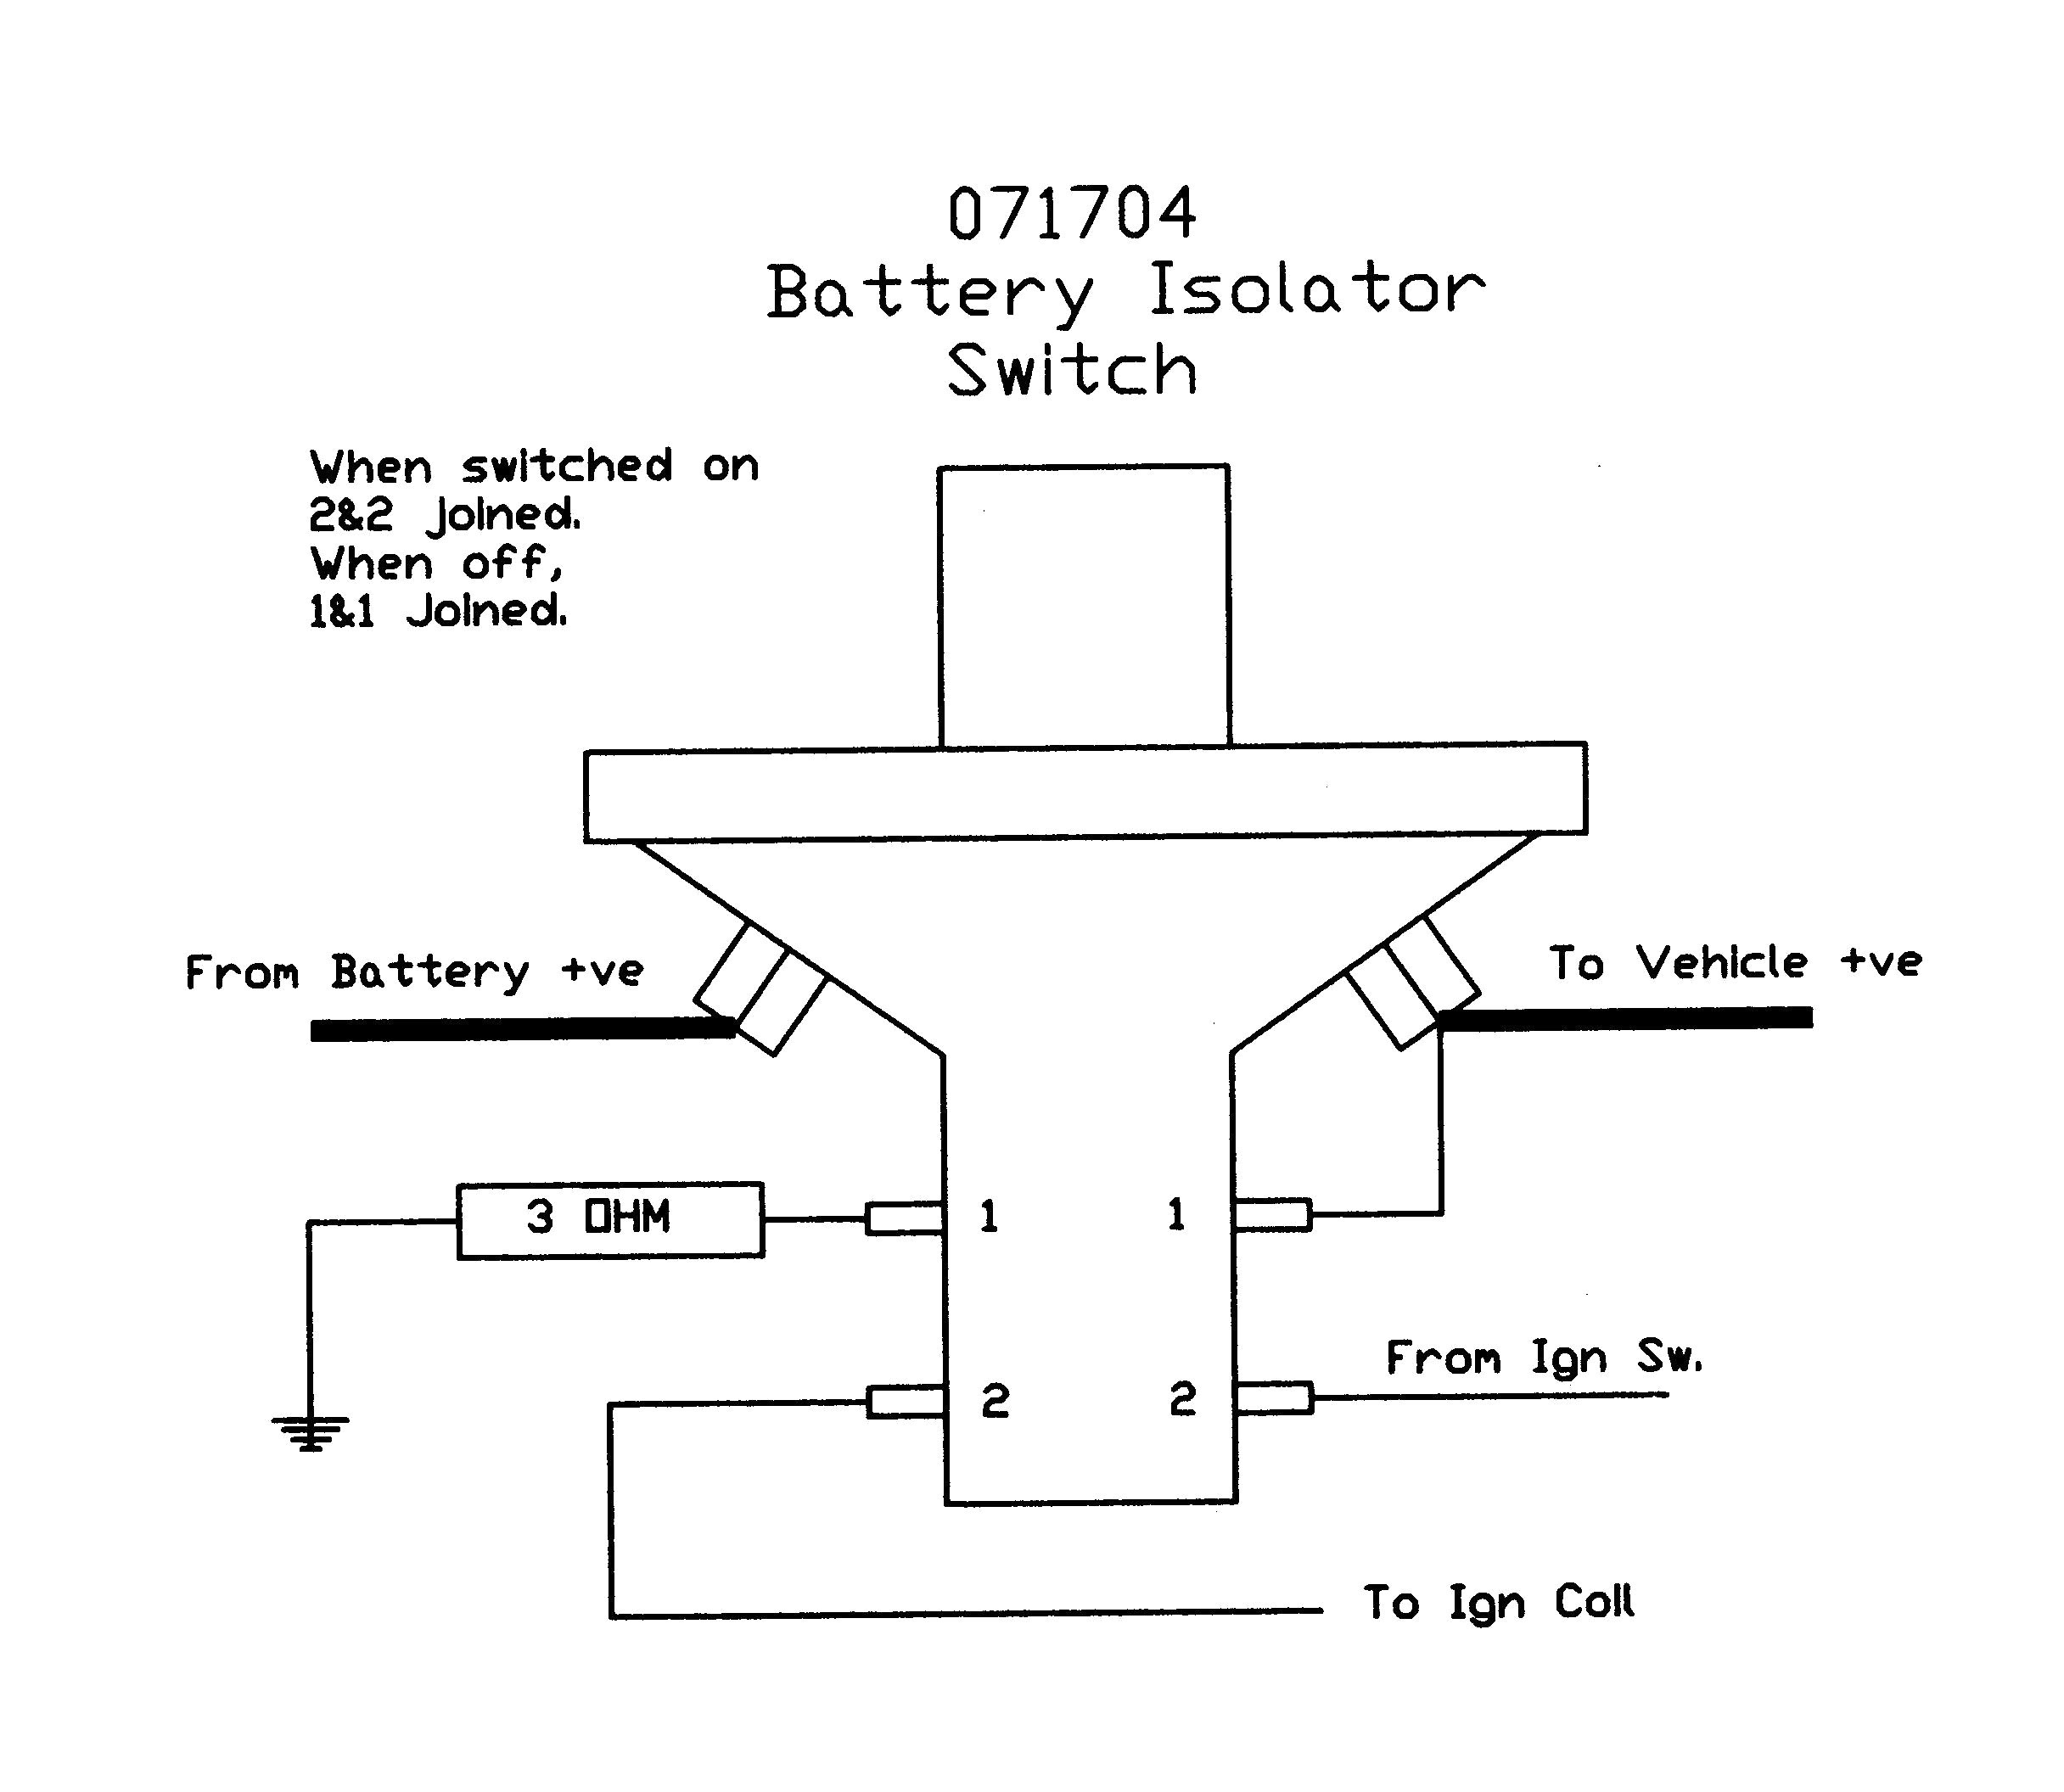 Stinger Battery Isolator Wiring Diagram Download Collection Boat Switch Unique Boattery